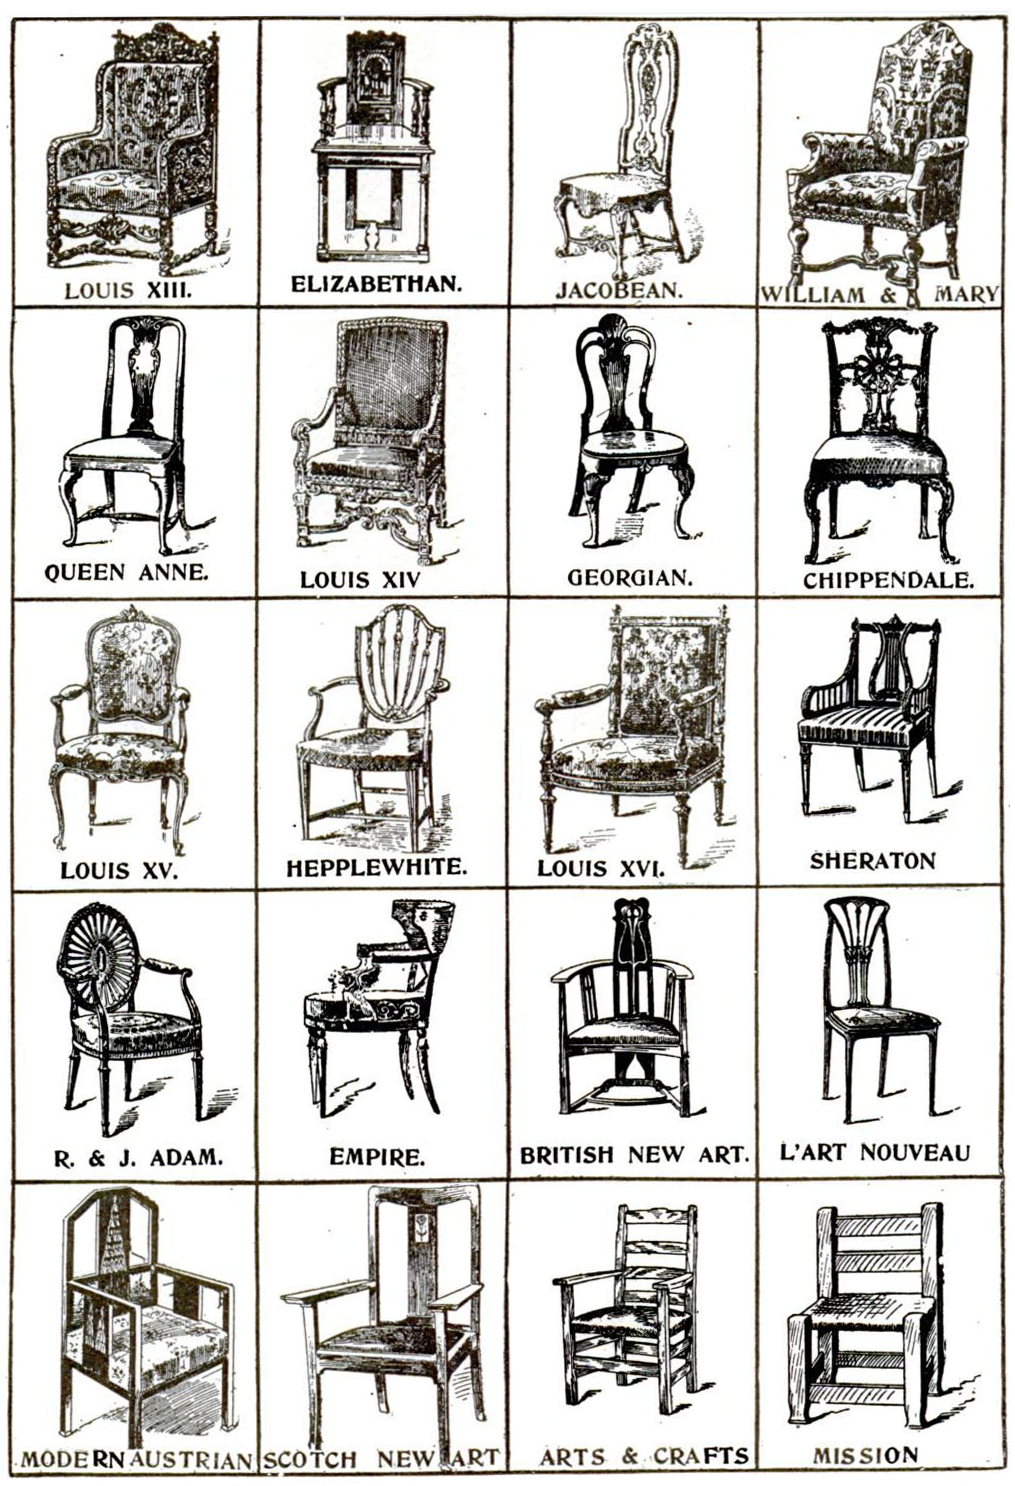 classification Prop Agenda : 40chairs2 from www.props.eric-hart.com size 1015 x 1486 png 1765kB